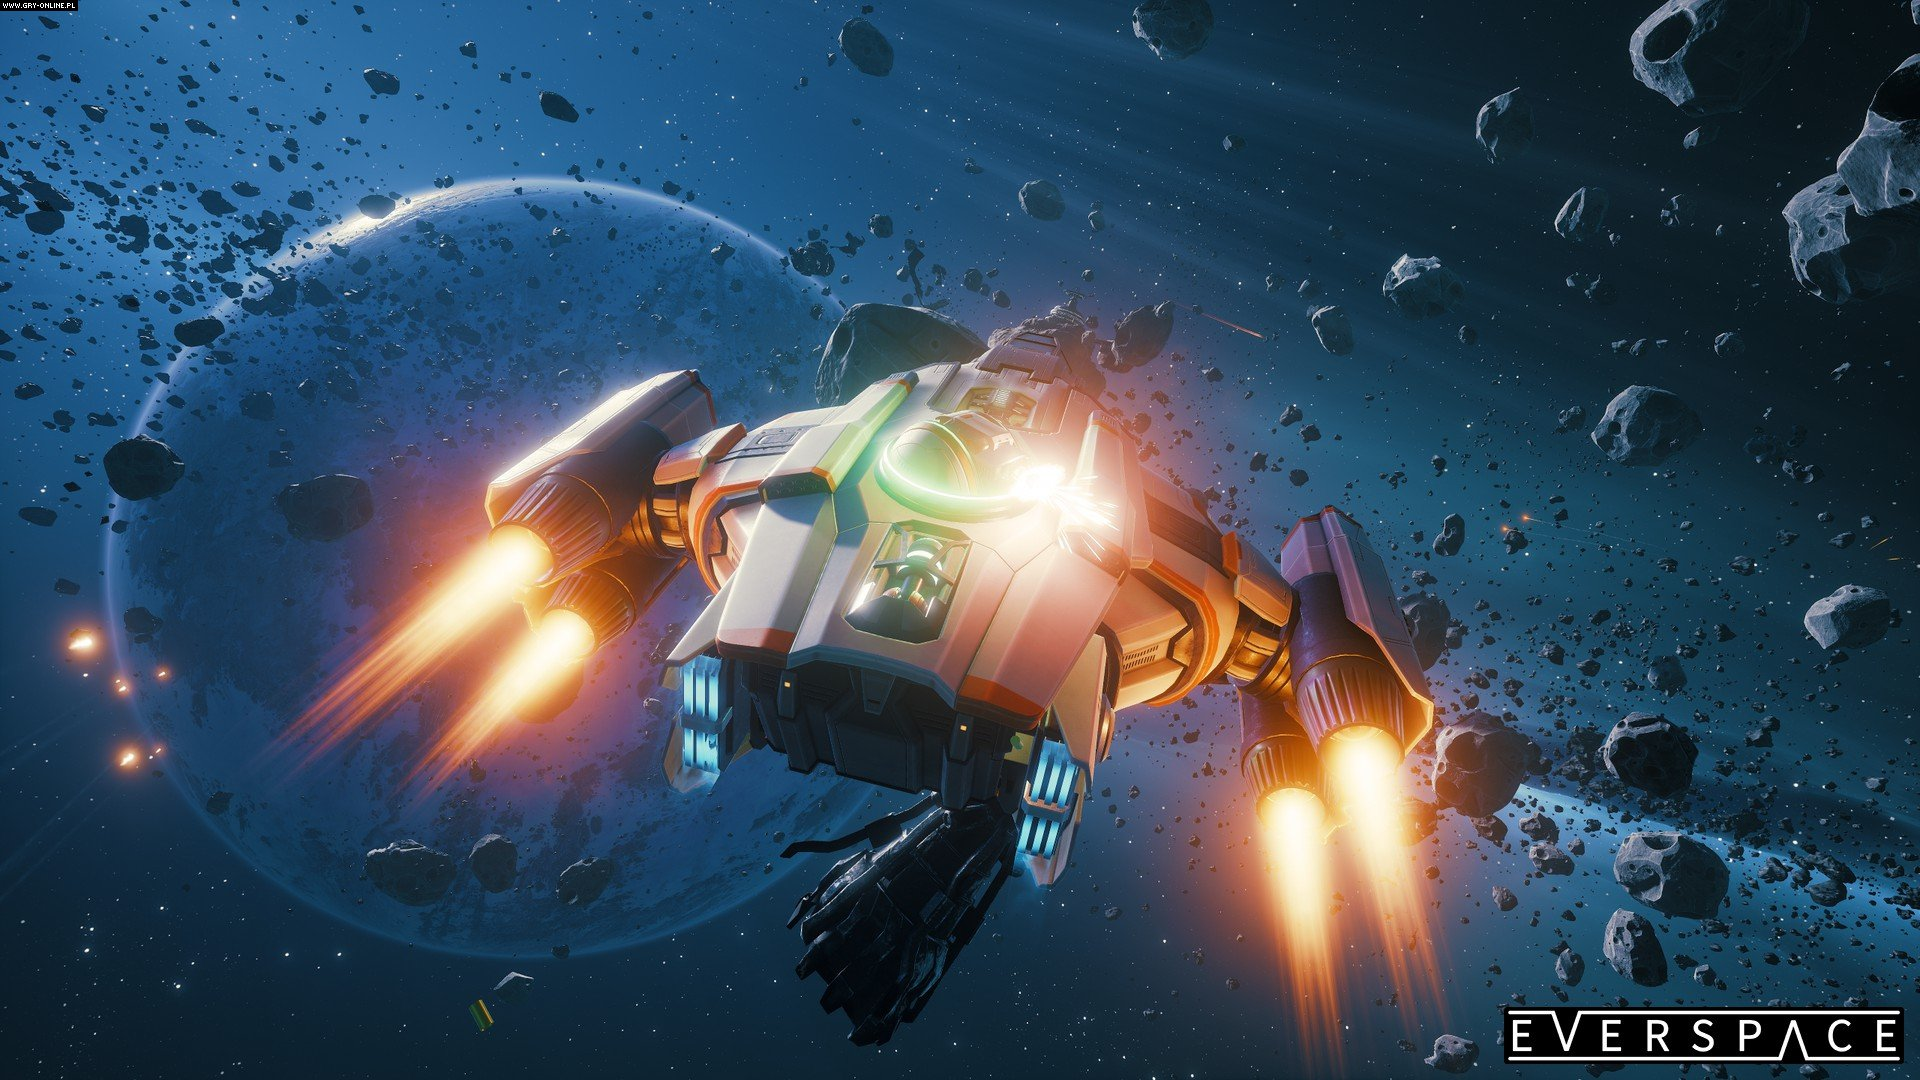 Everspace PC, PS4, XONE, Switch Gry Screen 38/104, Rockfish Games